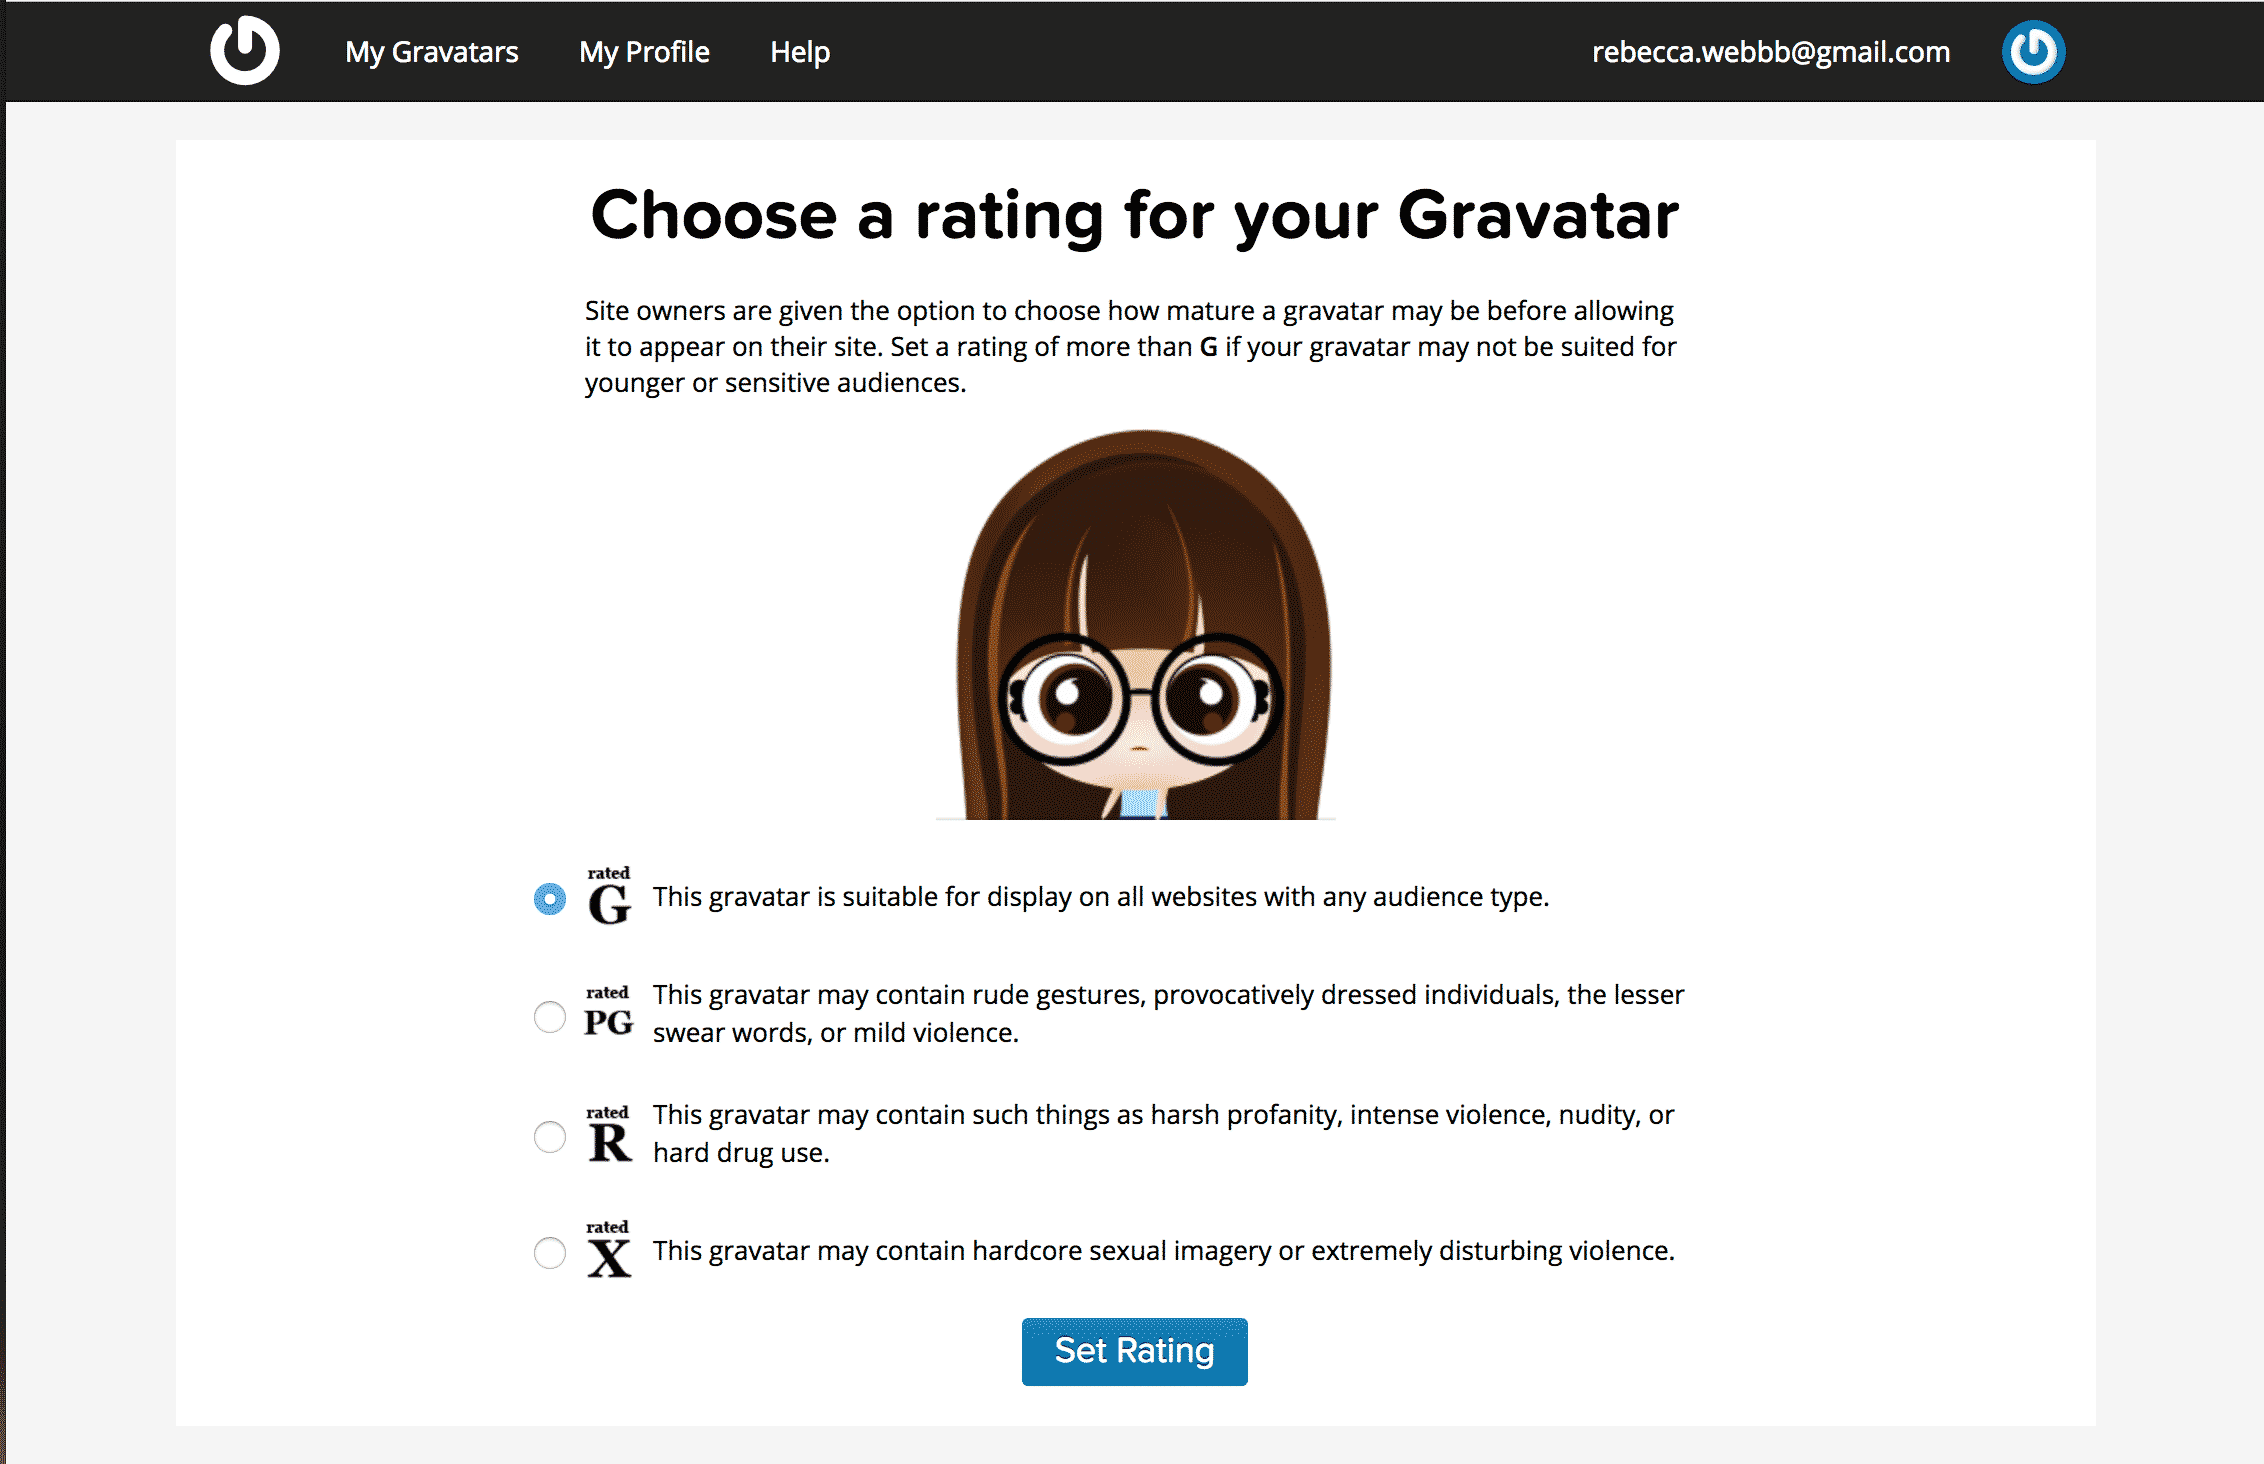 Choosing rating for a gravatar image